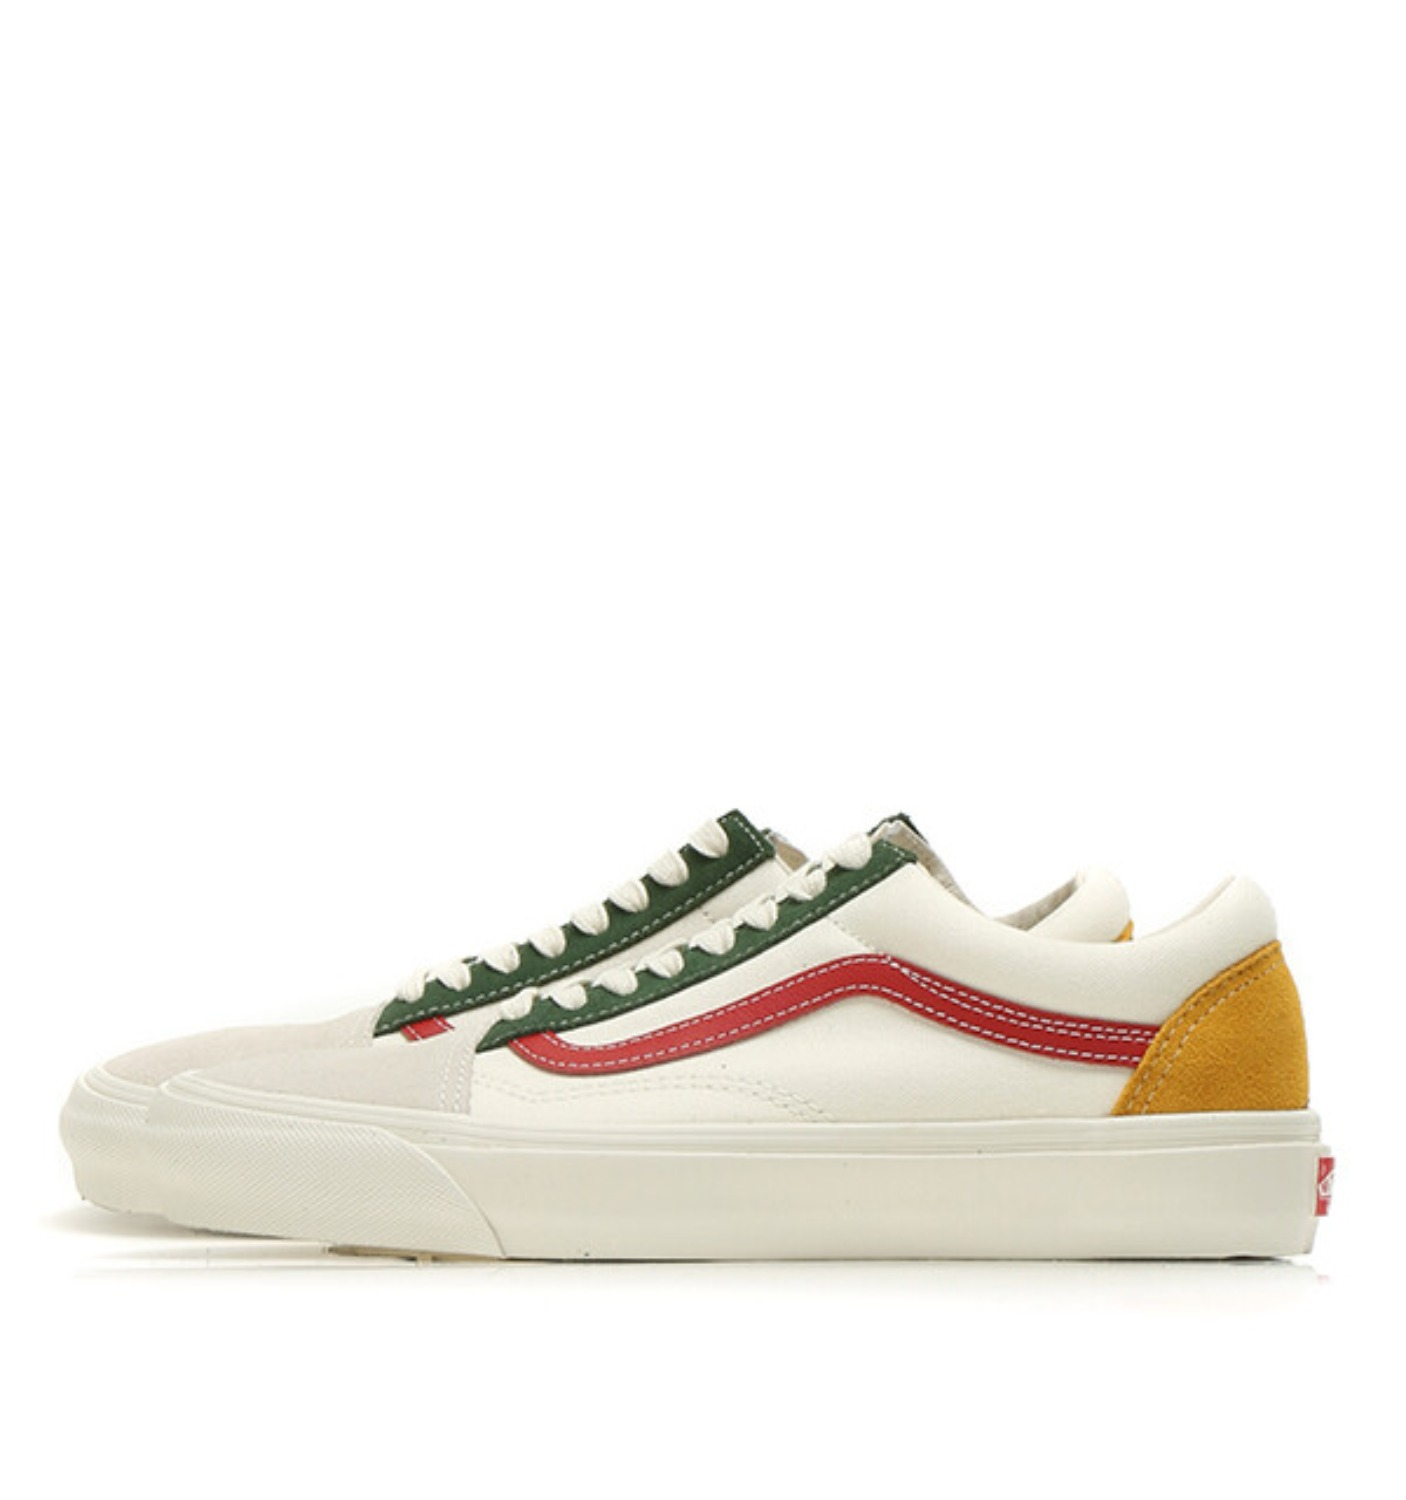 OG OLD SKOOL LX(SUEDE/CANVAS) MARSHMALLOW/MULTI